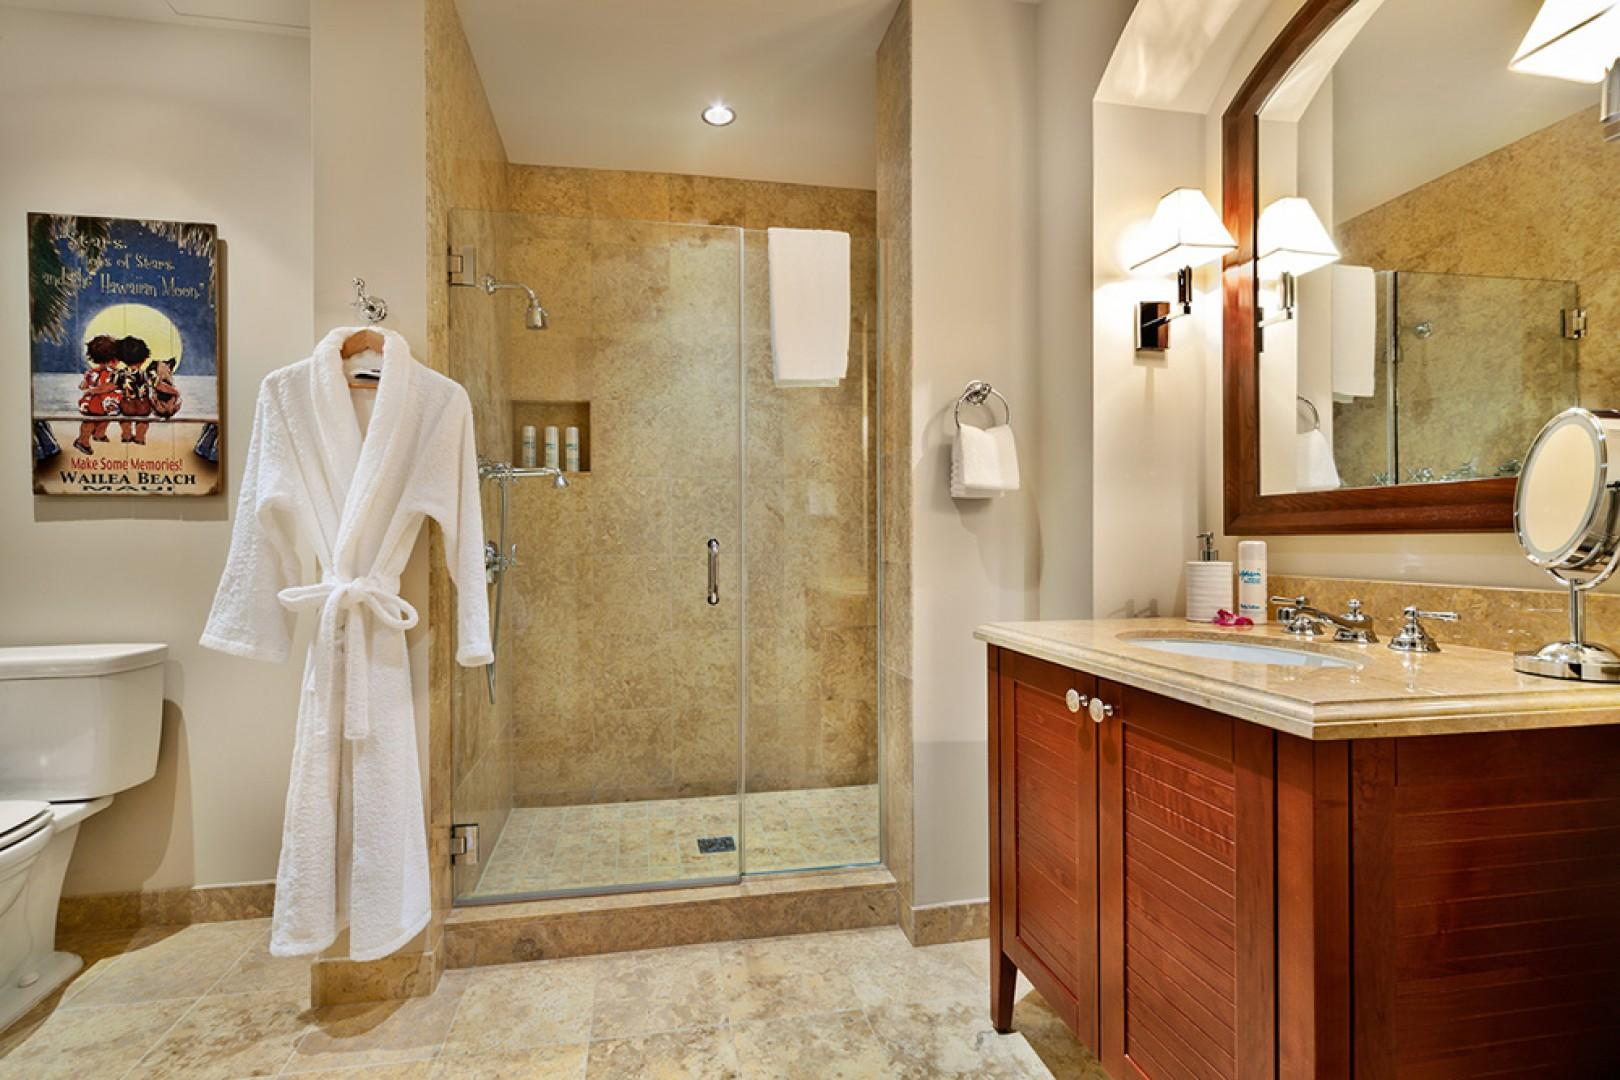 G102 Floral Gardens Third Bedroom En-Suite Bath with Glass Shower, Fluffy Towels and Bathrobes, Hair Dryer, Scale, Make-Up Mirror